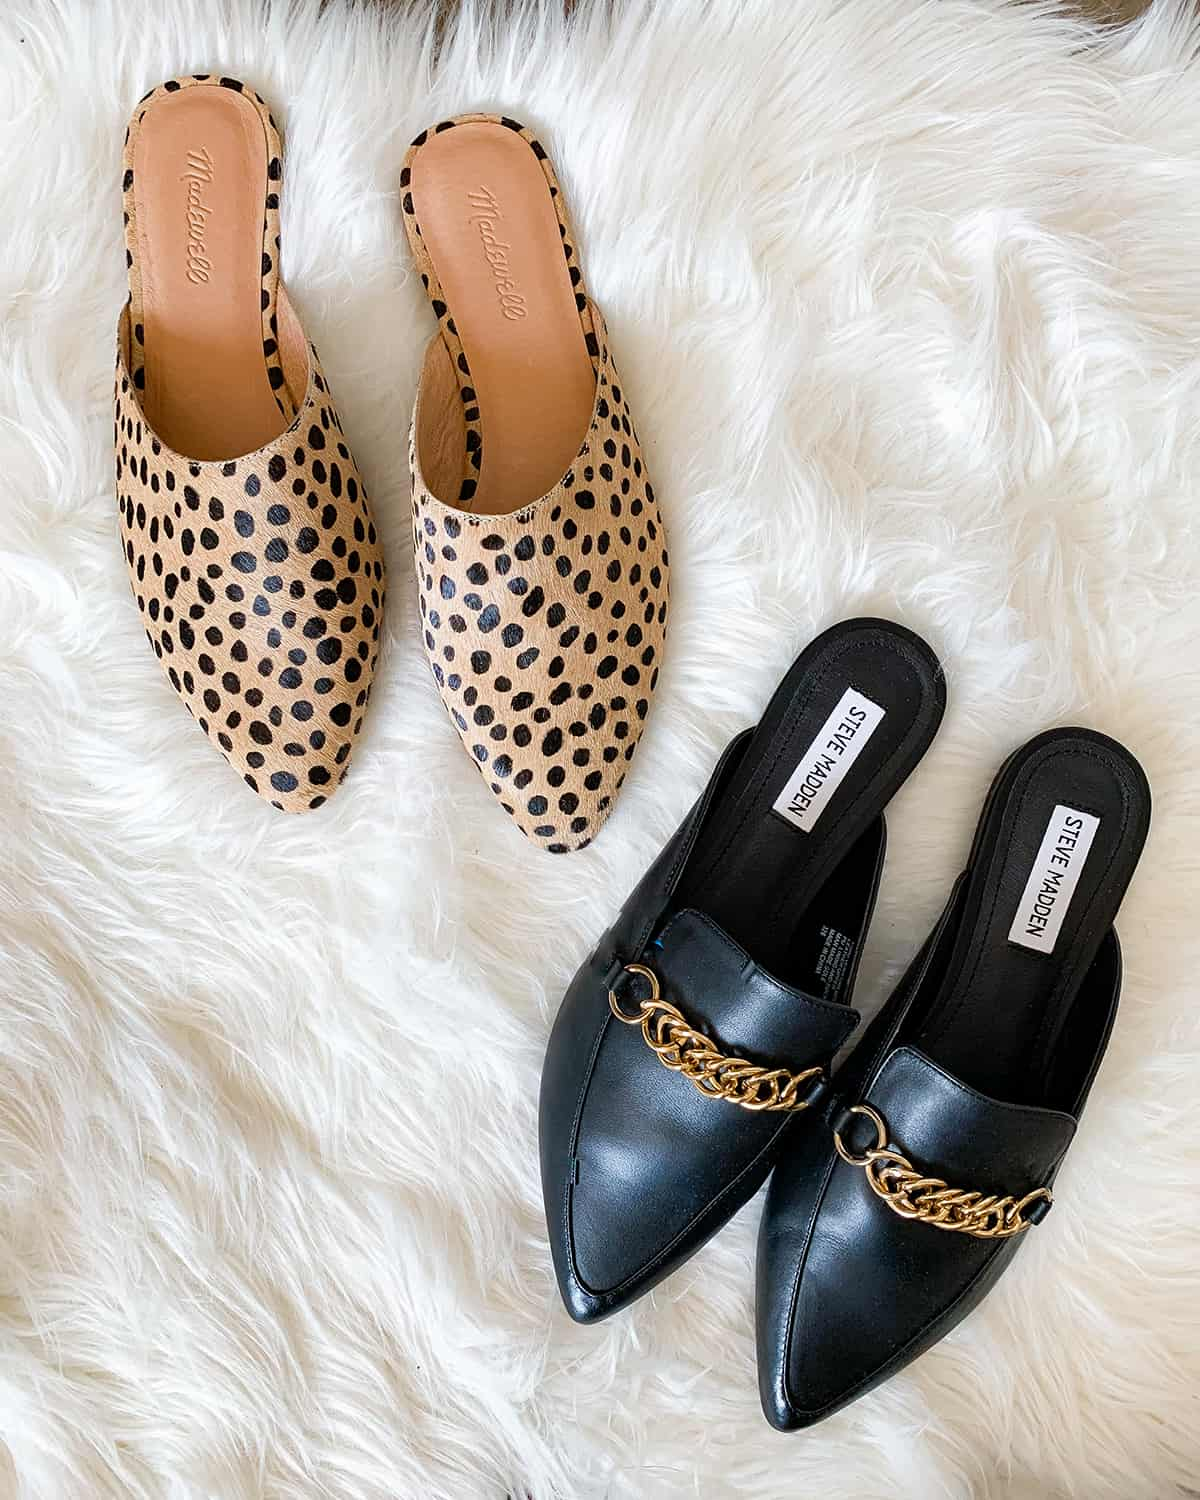 Nordstrom Anniversary Sale Shoe Finds